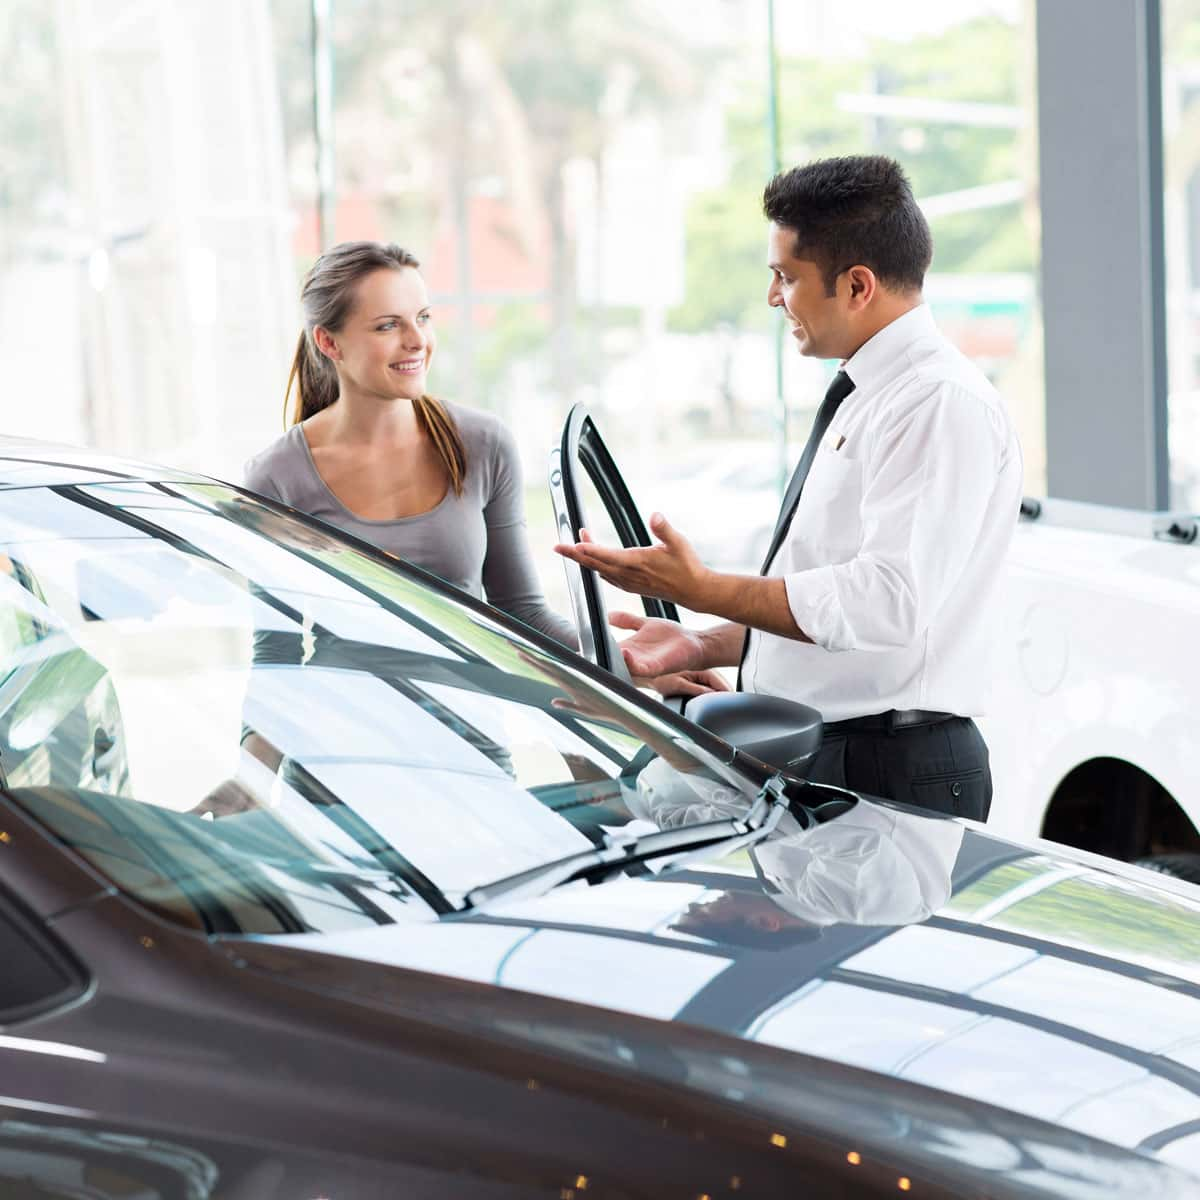 Image of a sales person with a customer looking at a car in a dealership.